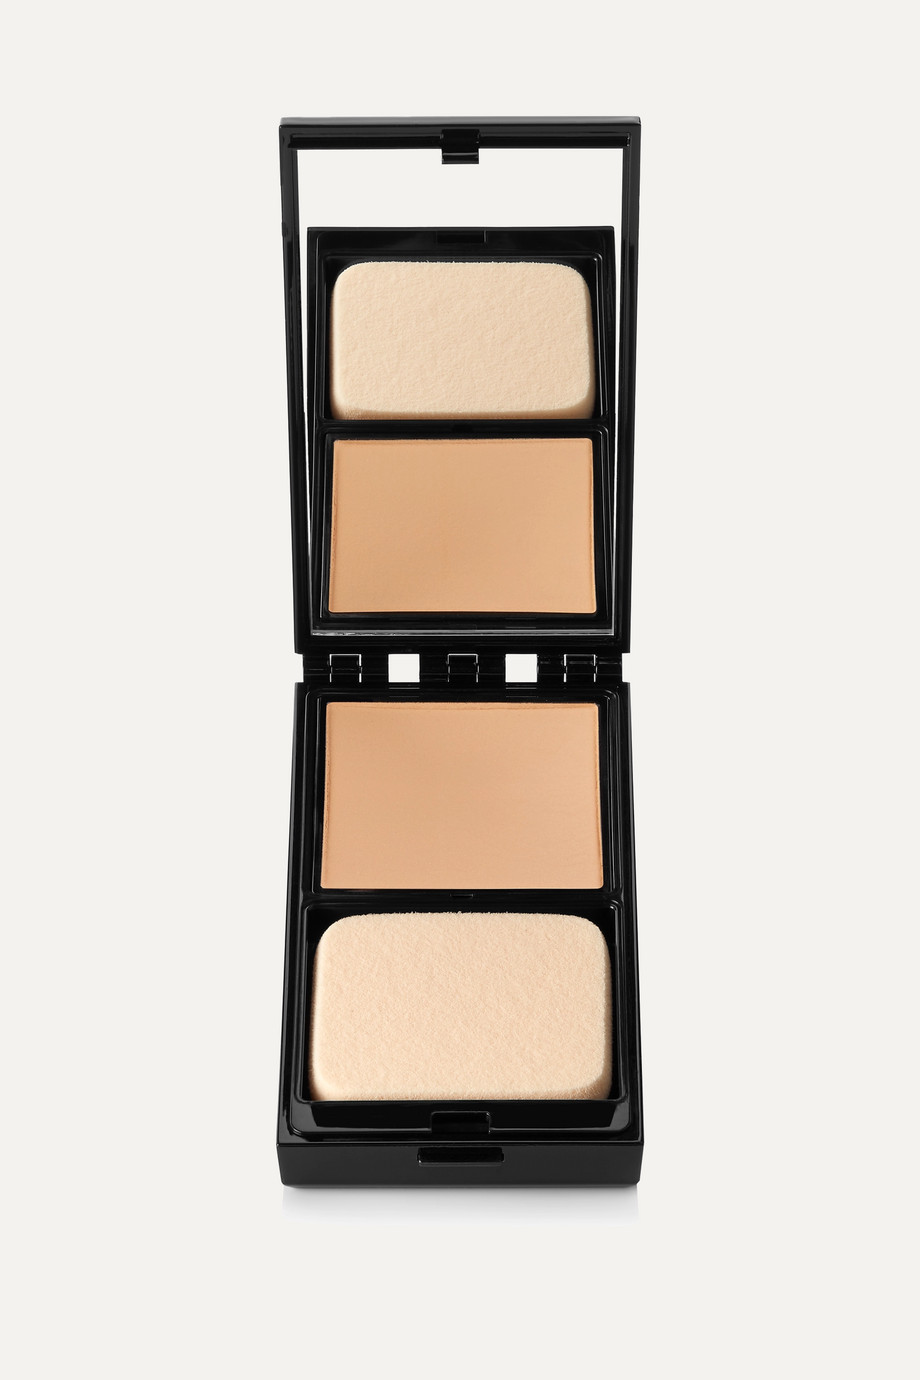 Serge Lutens Teint Si Fin Compact Foundation – 040 – Foundation